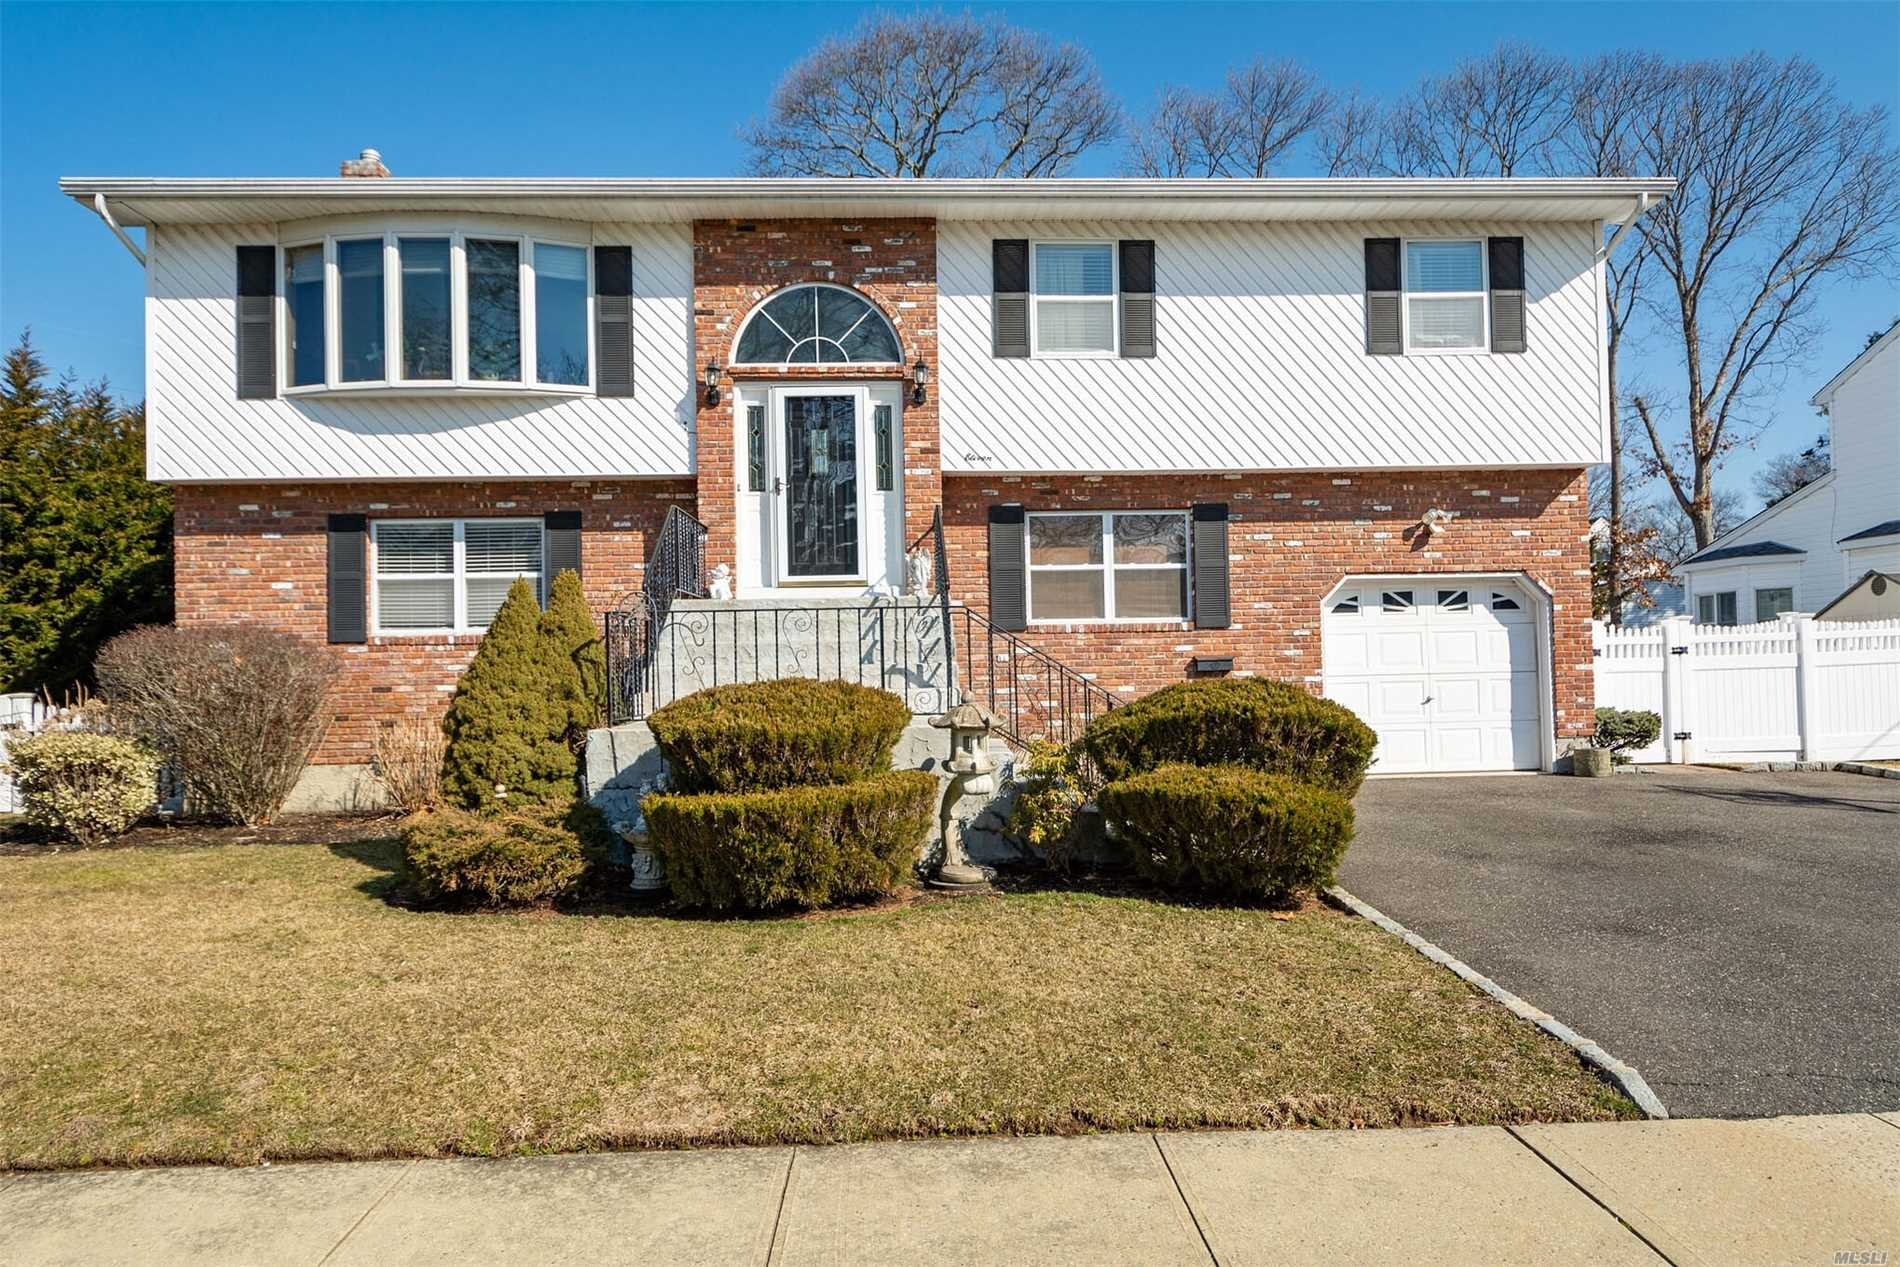 Tax grievence Reduction of $3908.reflected in taxes posted. Will begin in Oct/2019-2020 Near Village shopping, Railroad & Major Highways. Yet Nestled On Quiet Residential Block.Steps To/From Park Preserves. Beautiful Oversized Private Property ,  Turm Key. This Home Offers Spacious Bright Rooms.Hw Flrs.Lrge Lr W/Vaulted Ceilings Updated Kitchen & Baths. Cac. Updated Gas Heat. New Roof. 6 Zone Ugs Front & Back. Full Basement. Raised Paneled Doors.Mother/Daughter With Proper Permits. Must See!